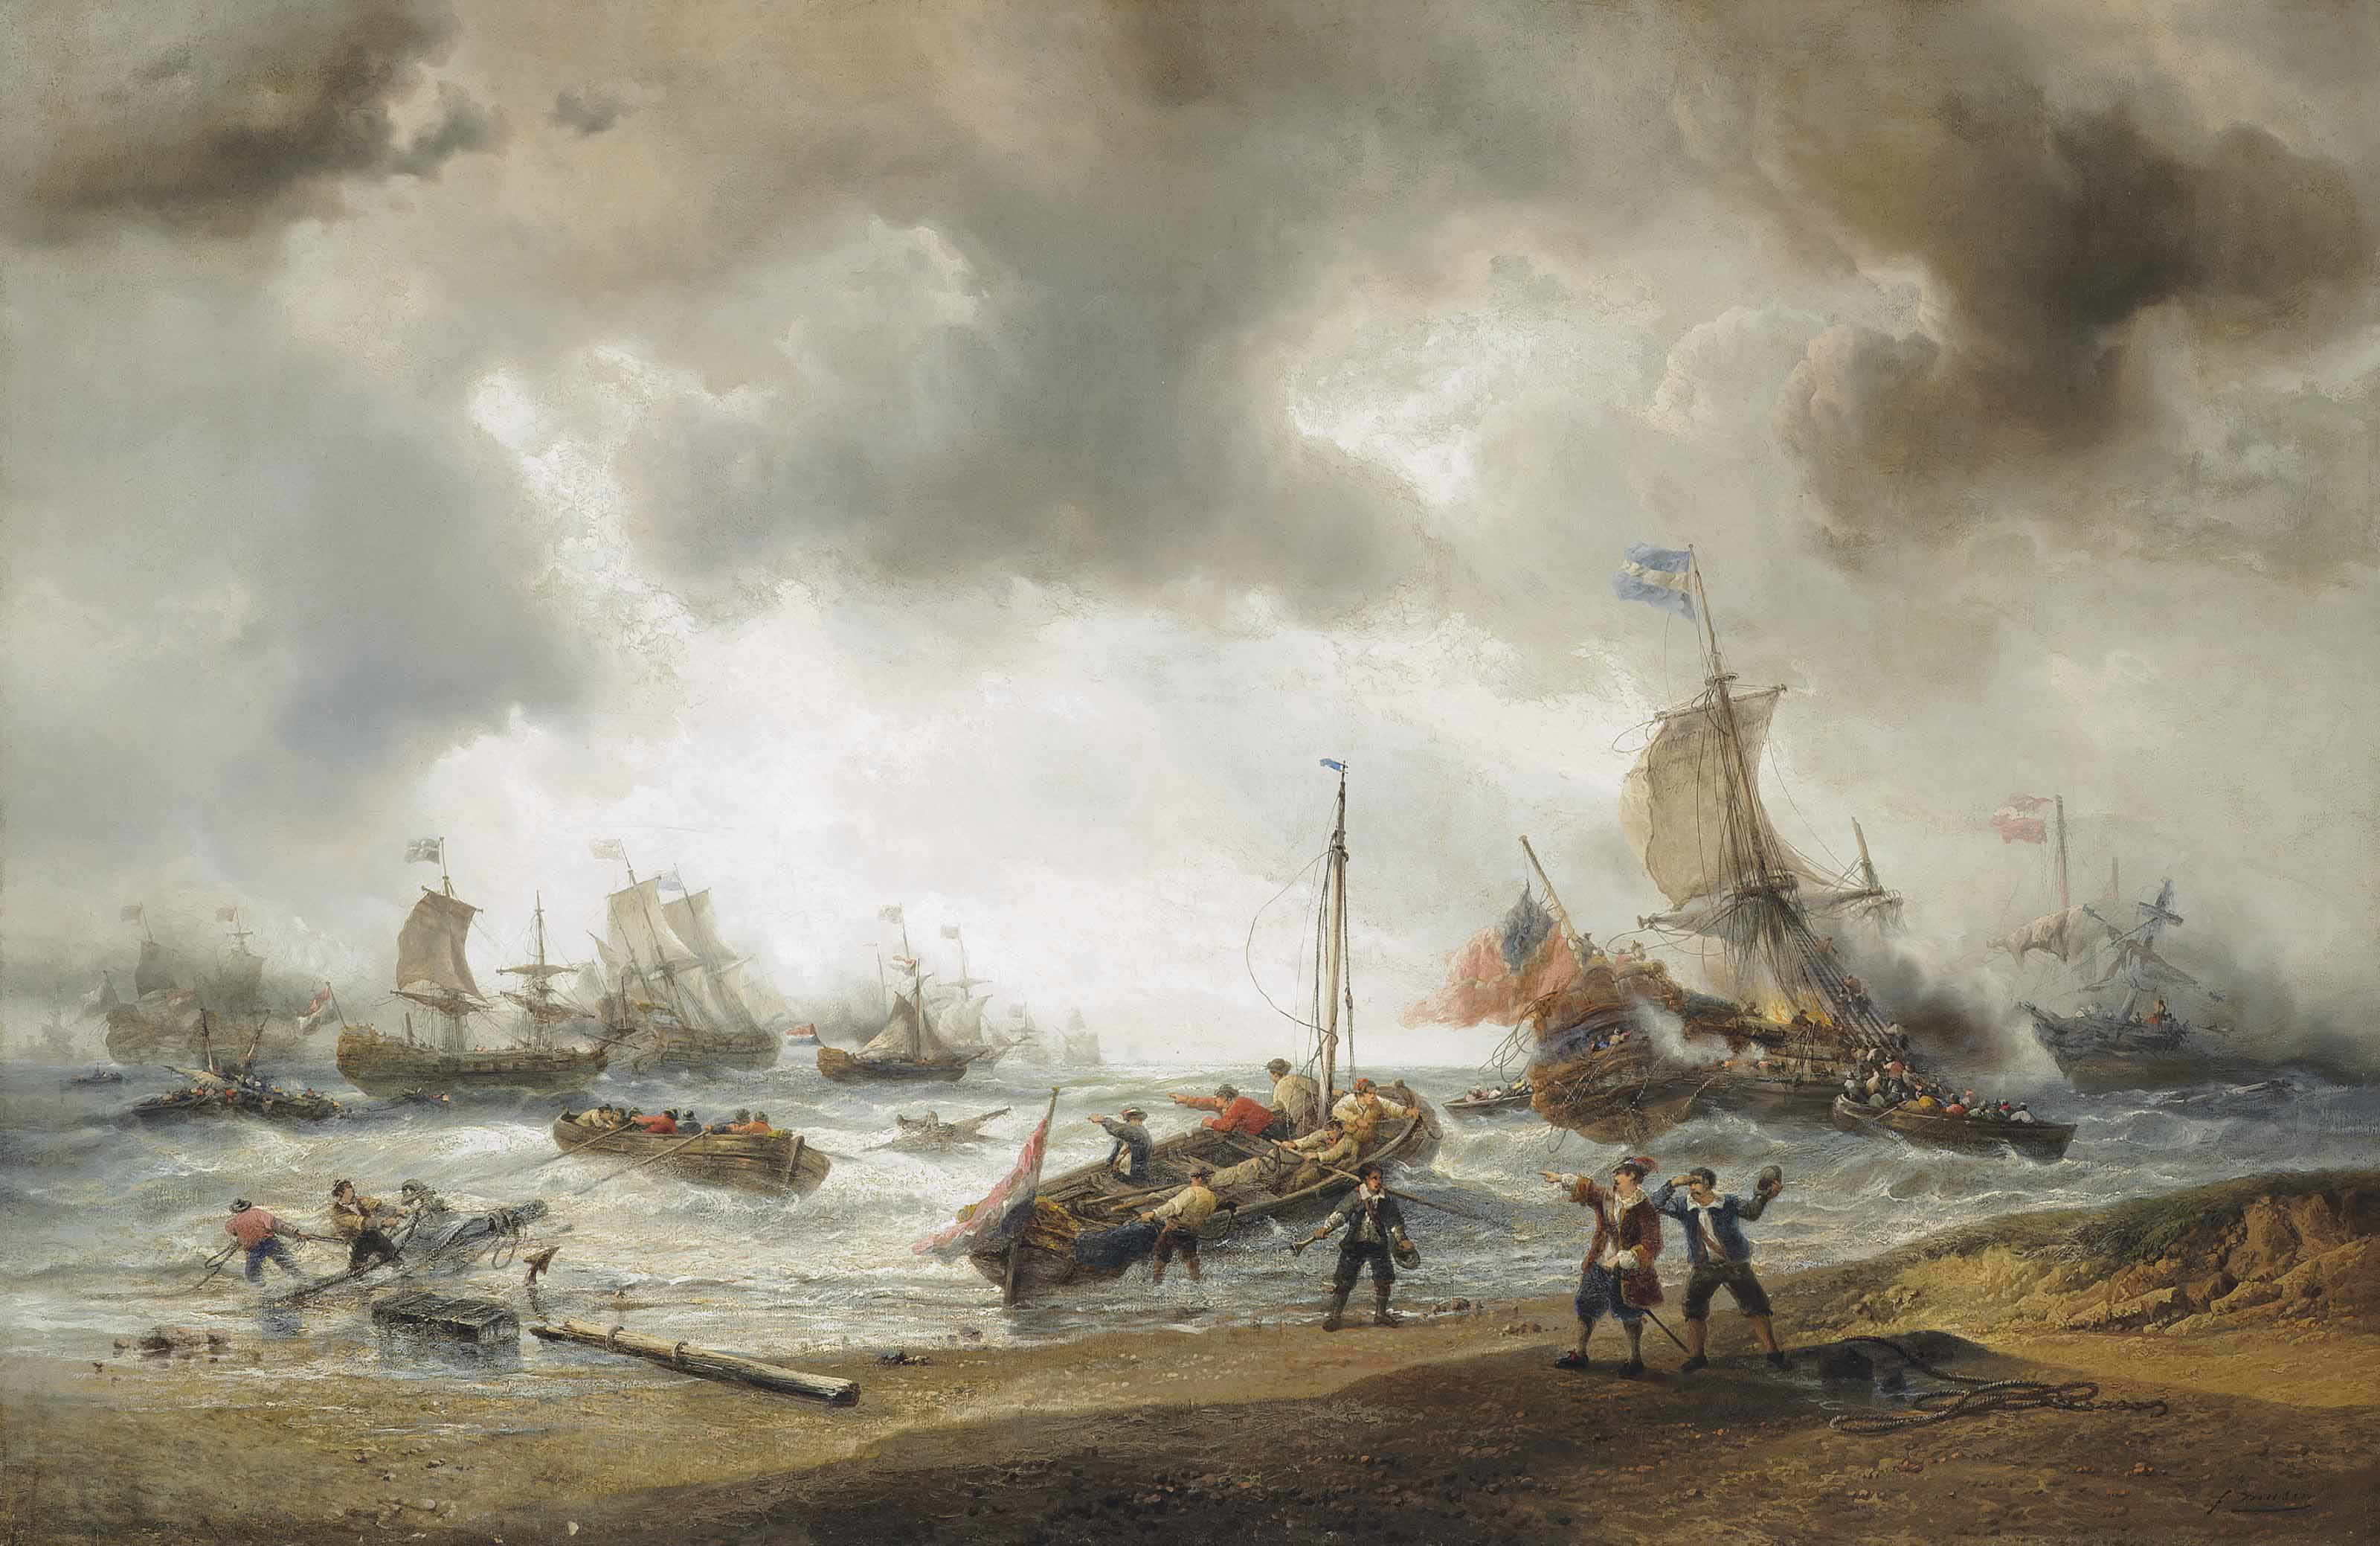 The closing stages of one of the battles in the Anglo-Dutch Wars